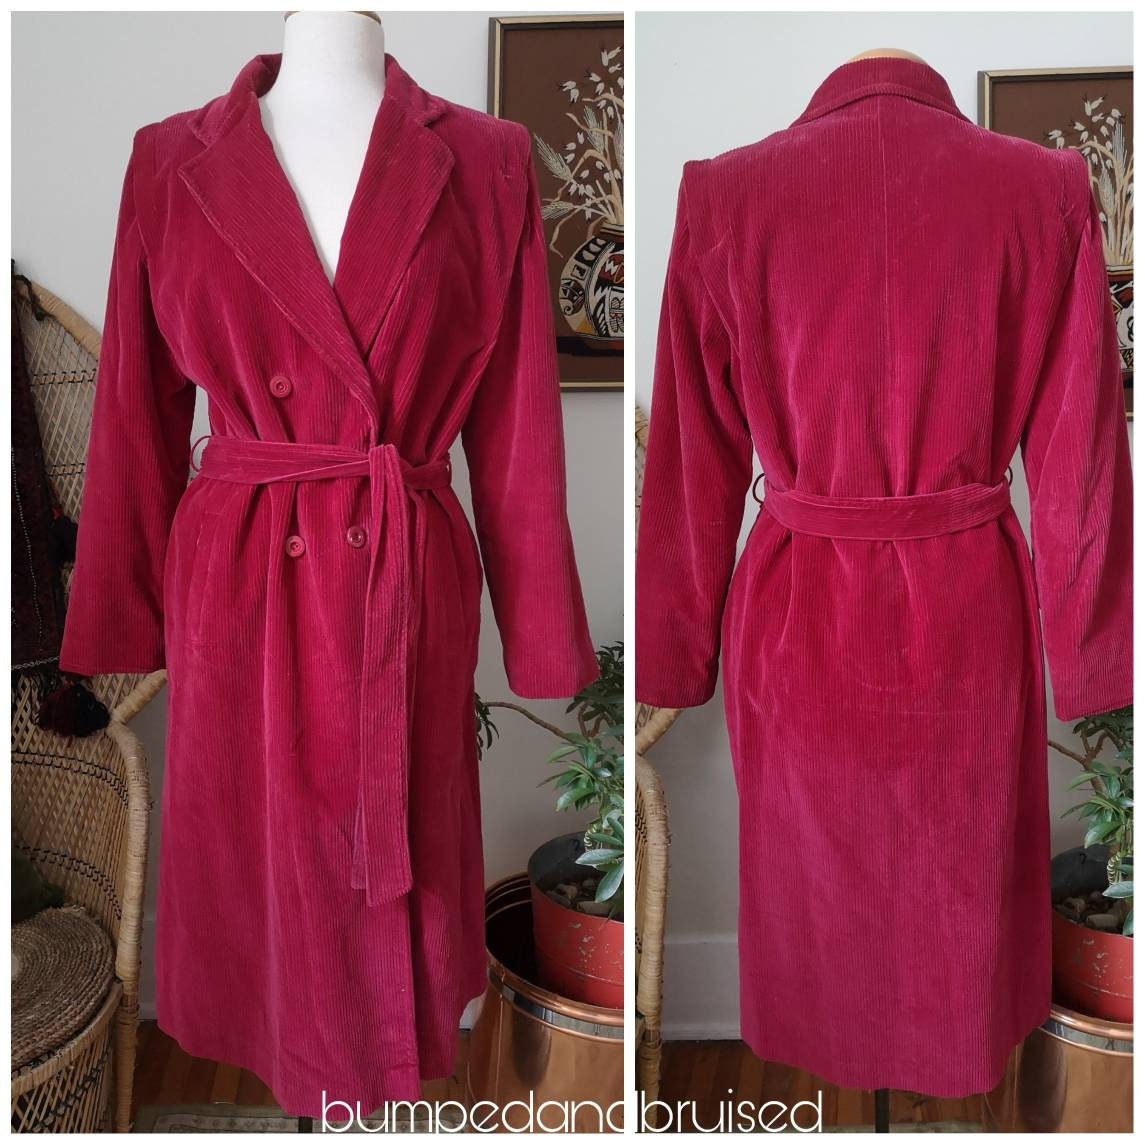 Vintage Scarf Styles -1920s to 1960s Red Corduroy Fall Trench Coat 90S Fashion Cottagecore Vintage M $26.00 AT vintagedancer.com